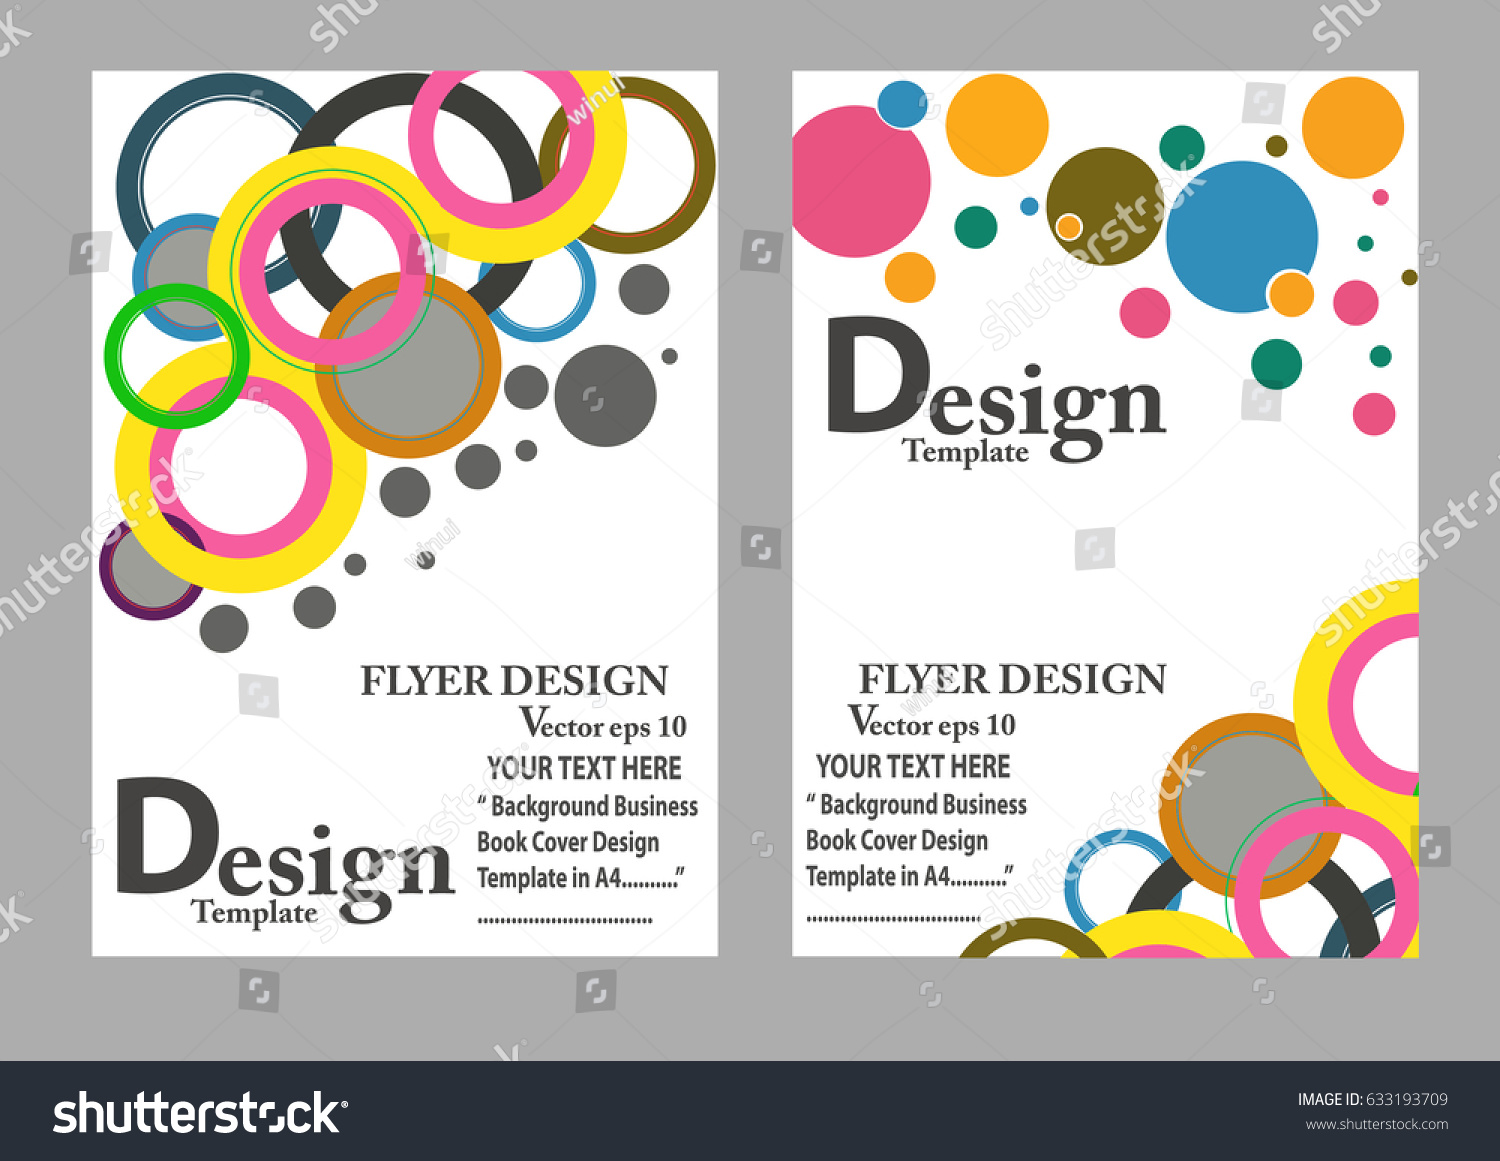 Geographics business cards image collections business card template geographics business cards templates mandegarfo geographics business cards templates colourmoves flashek Choice Image